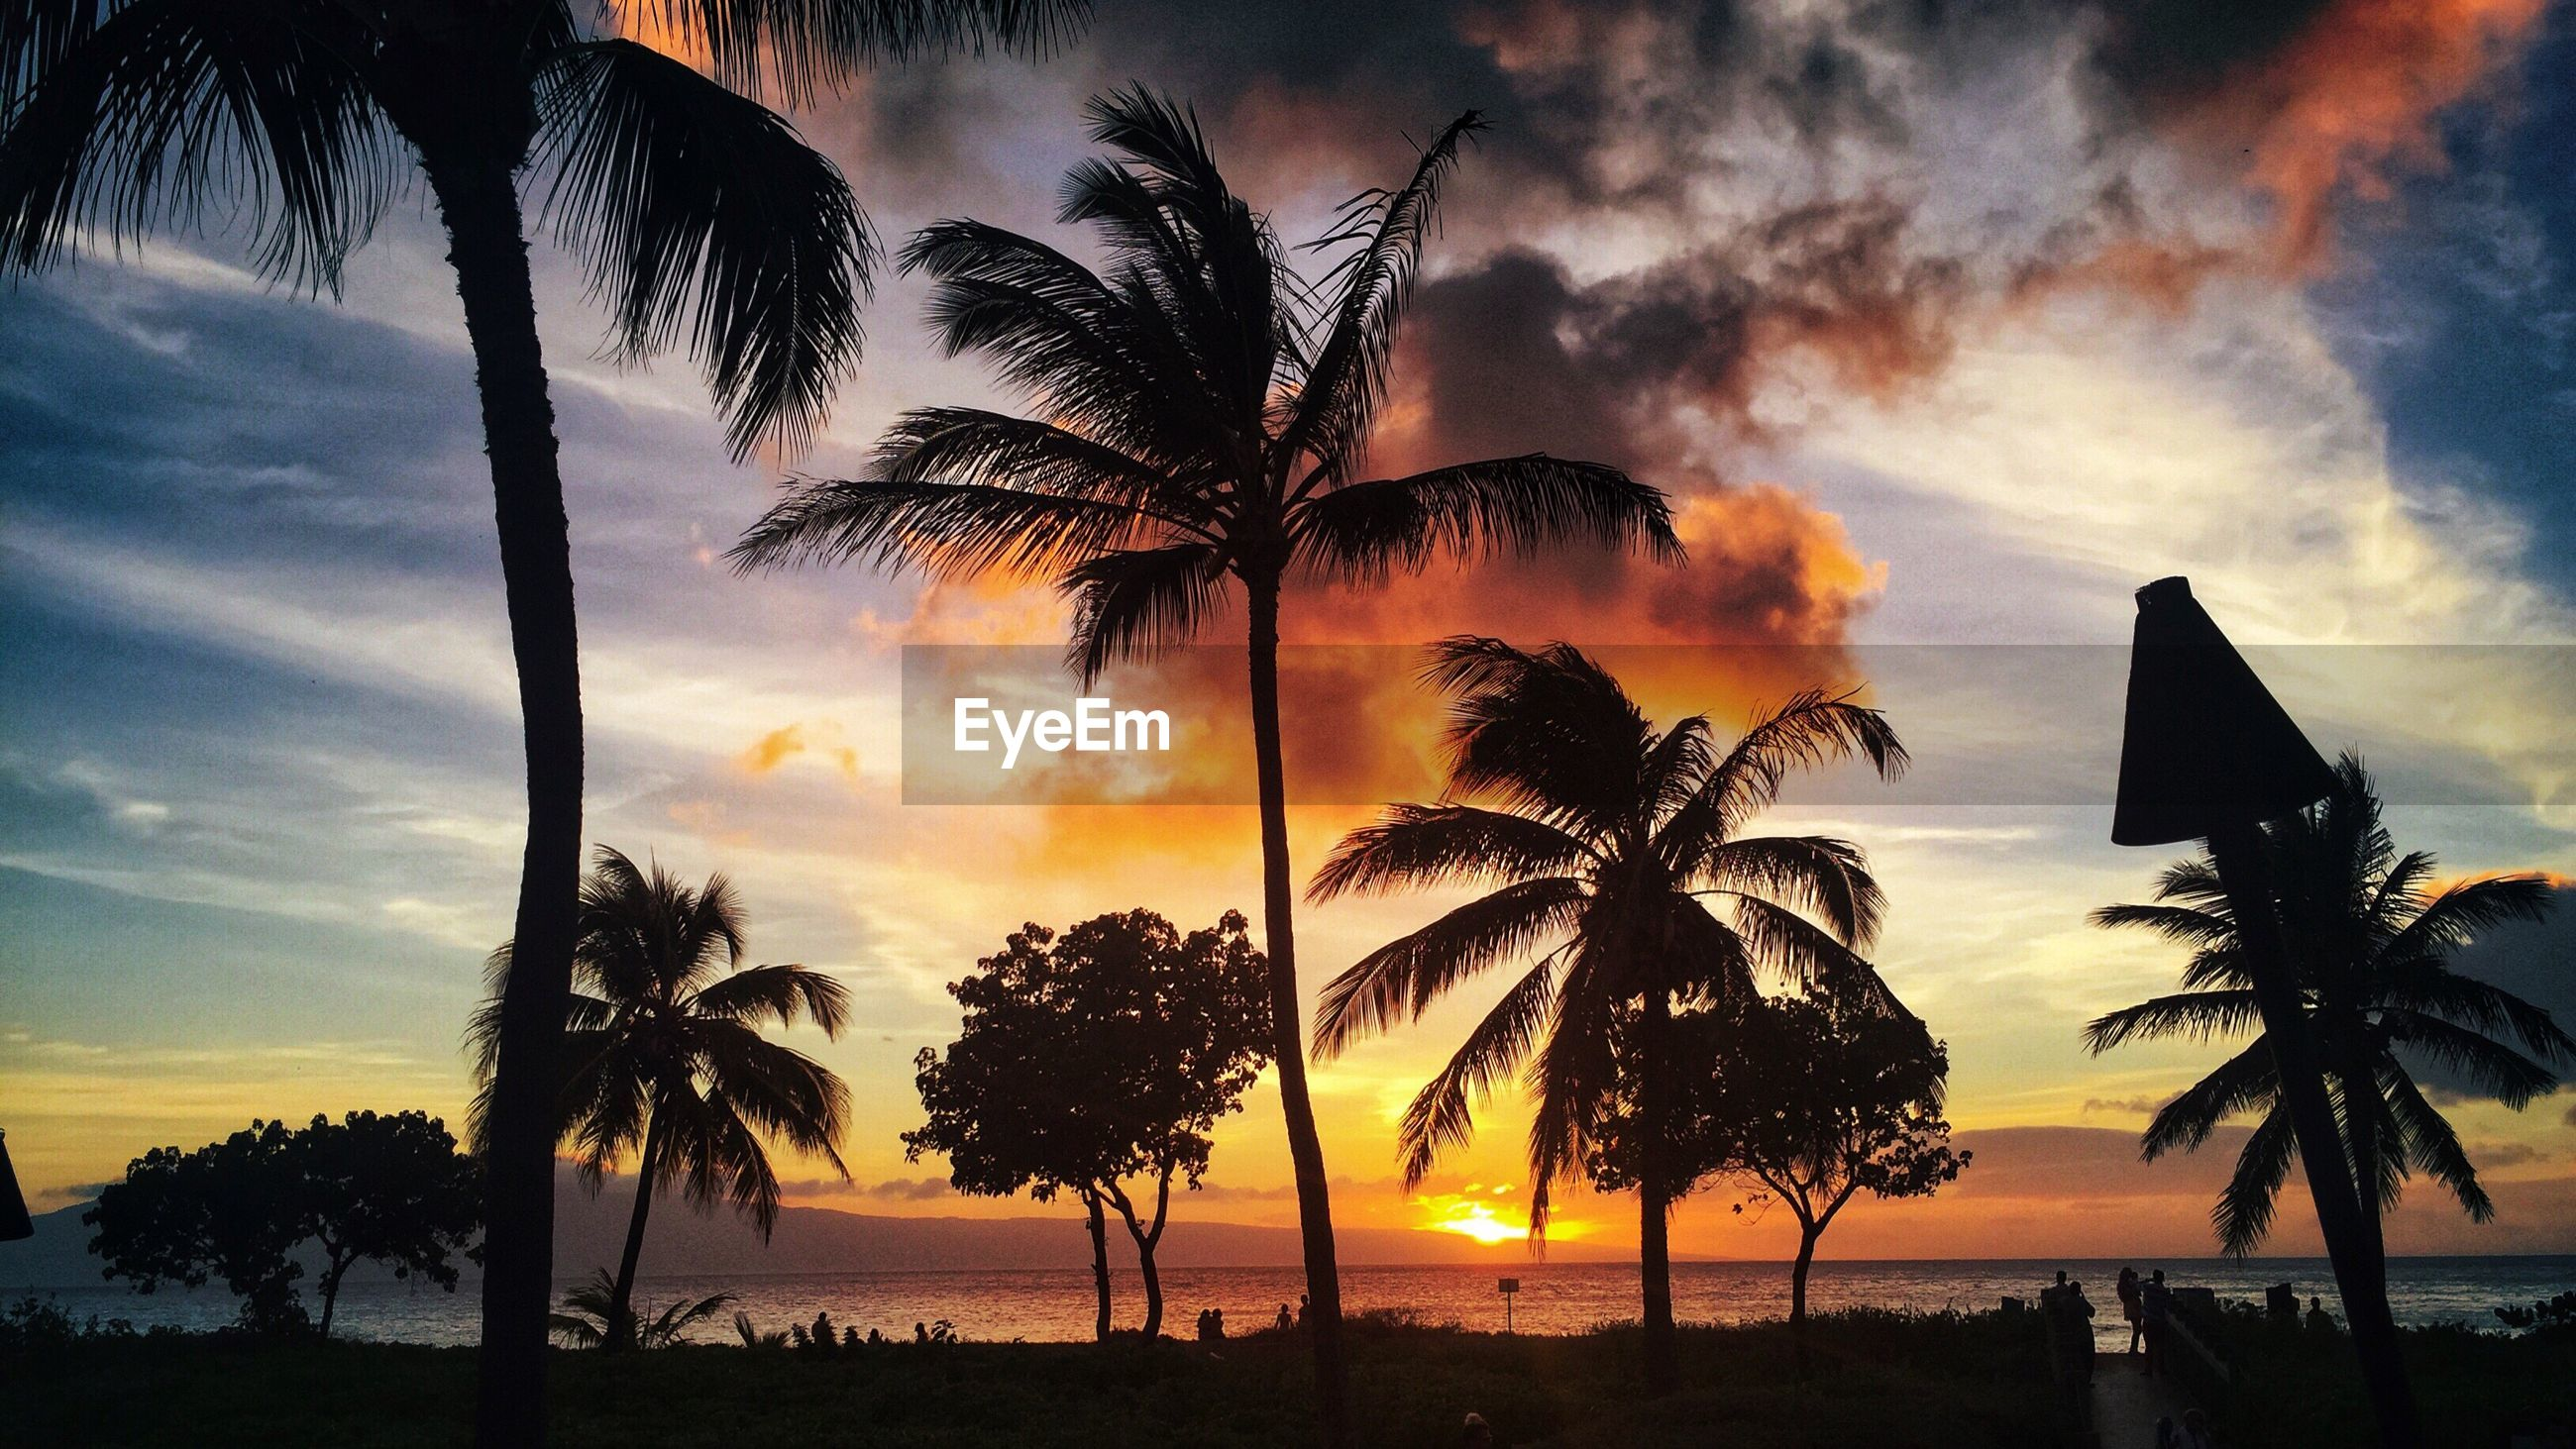 SILHOUETTE PALM TREES AGAINST SKY AT SUNSET